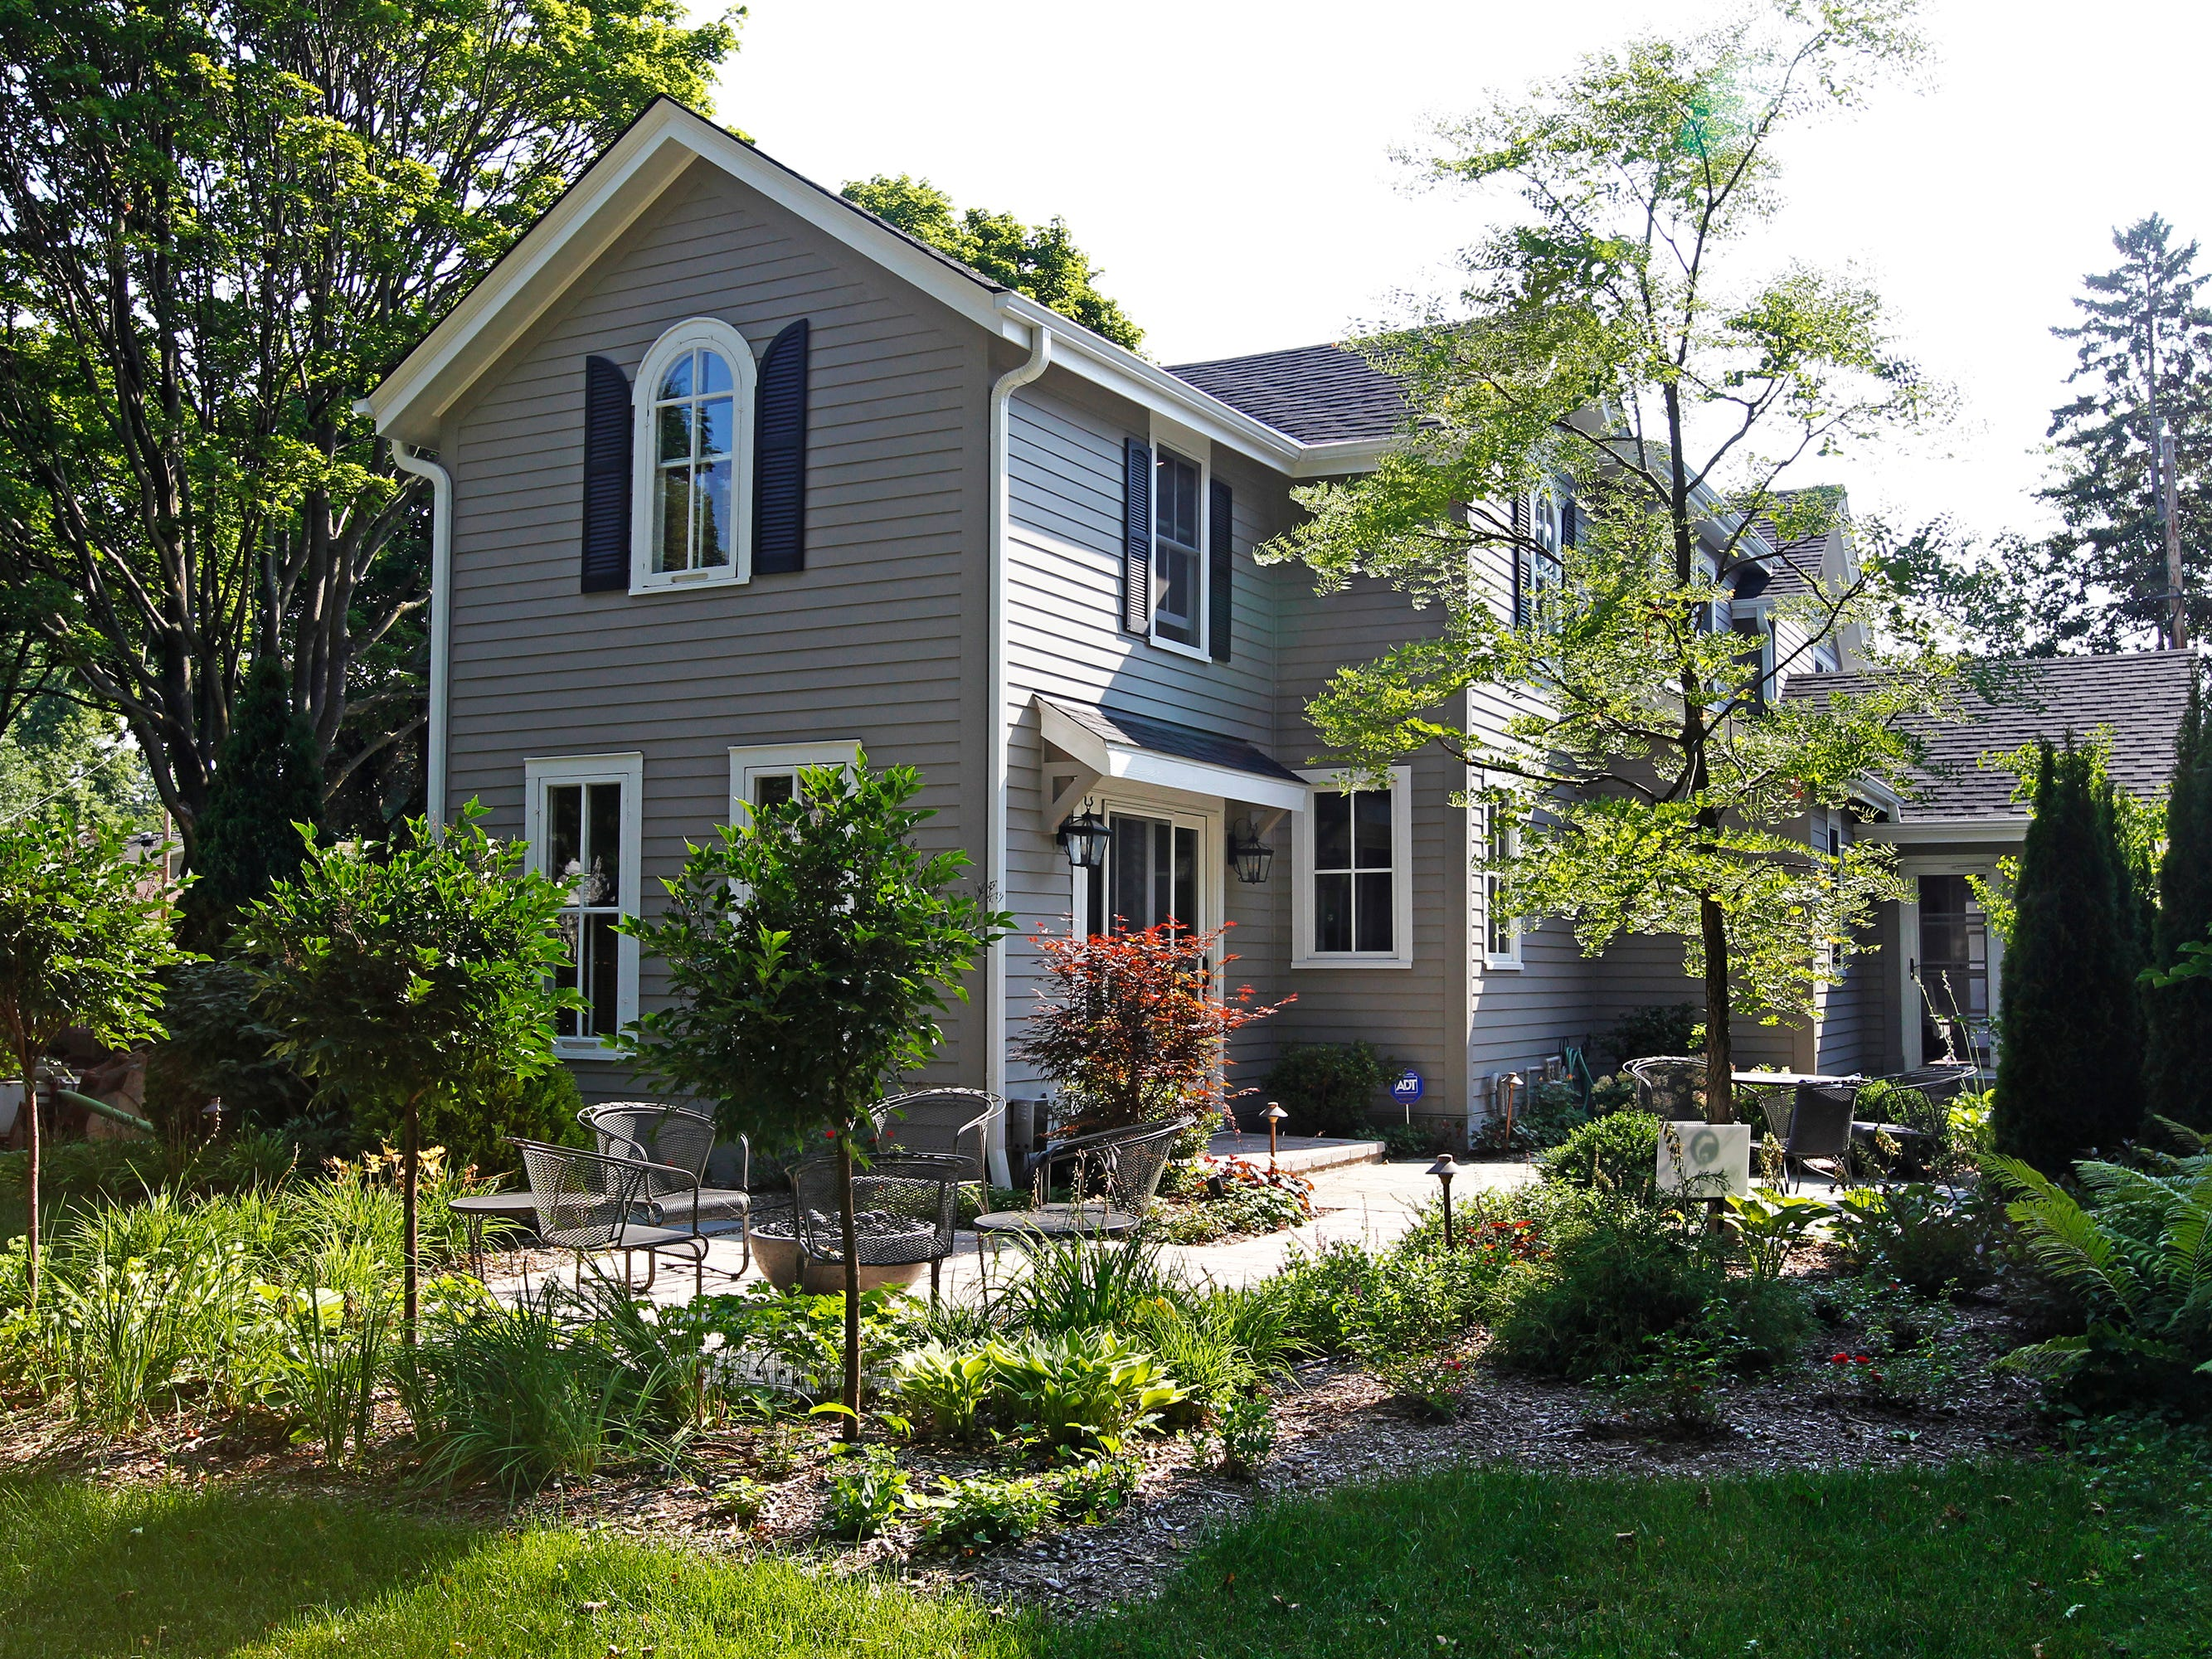 The home includes three separate garden areas, including this one.